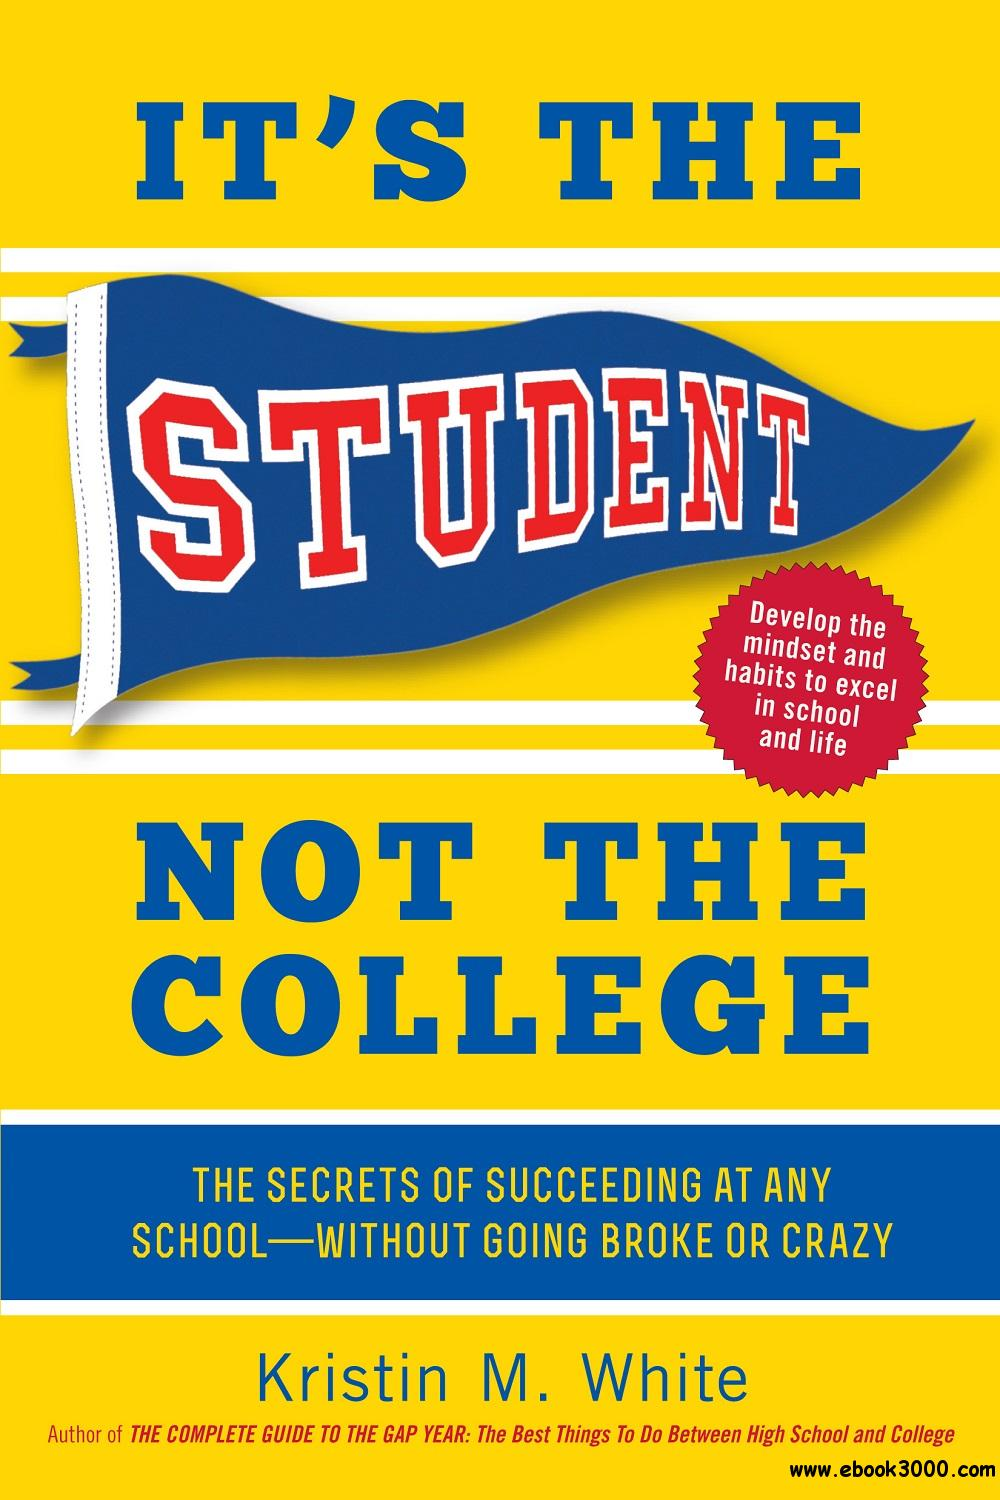 It's the Student, Not the College: The Secrets of Succeeding at Any School-Without Going Broke or Crazy